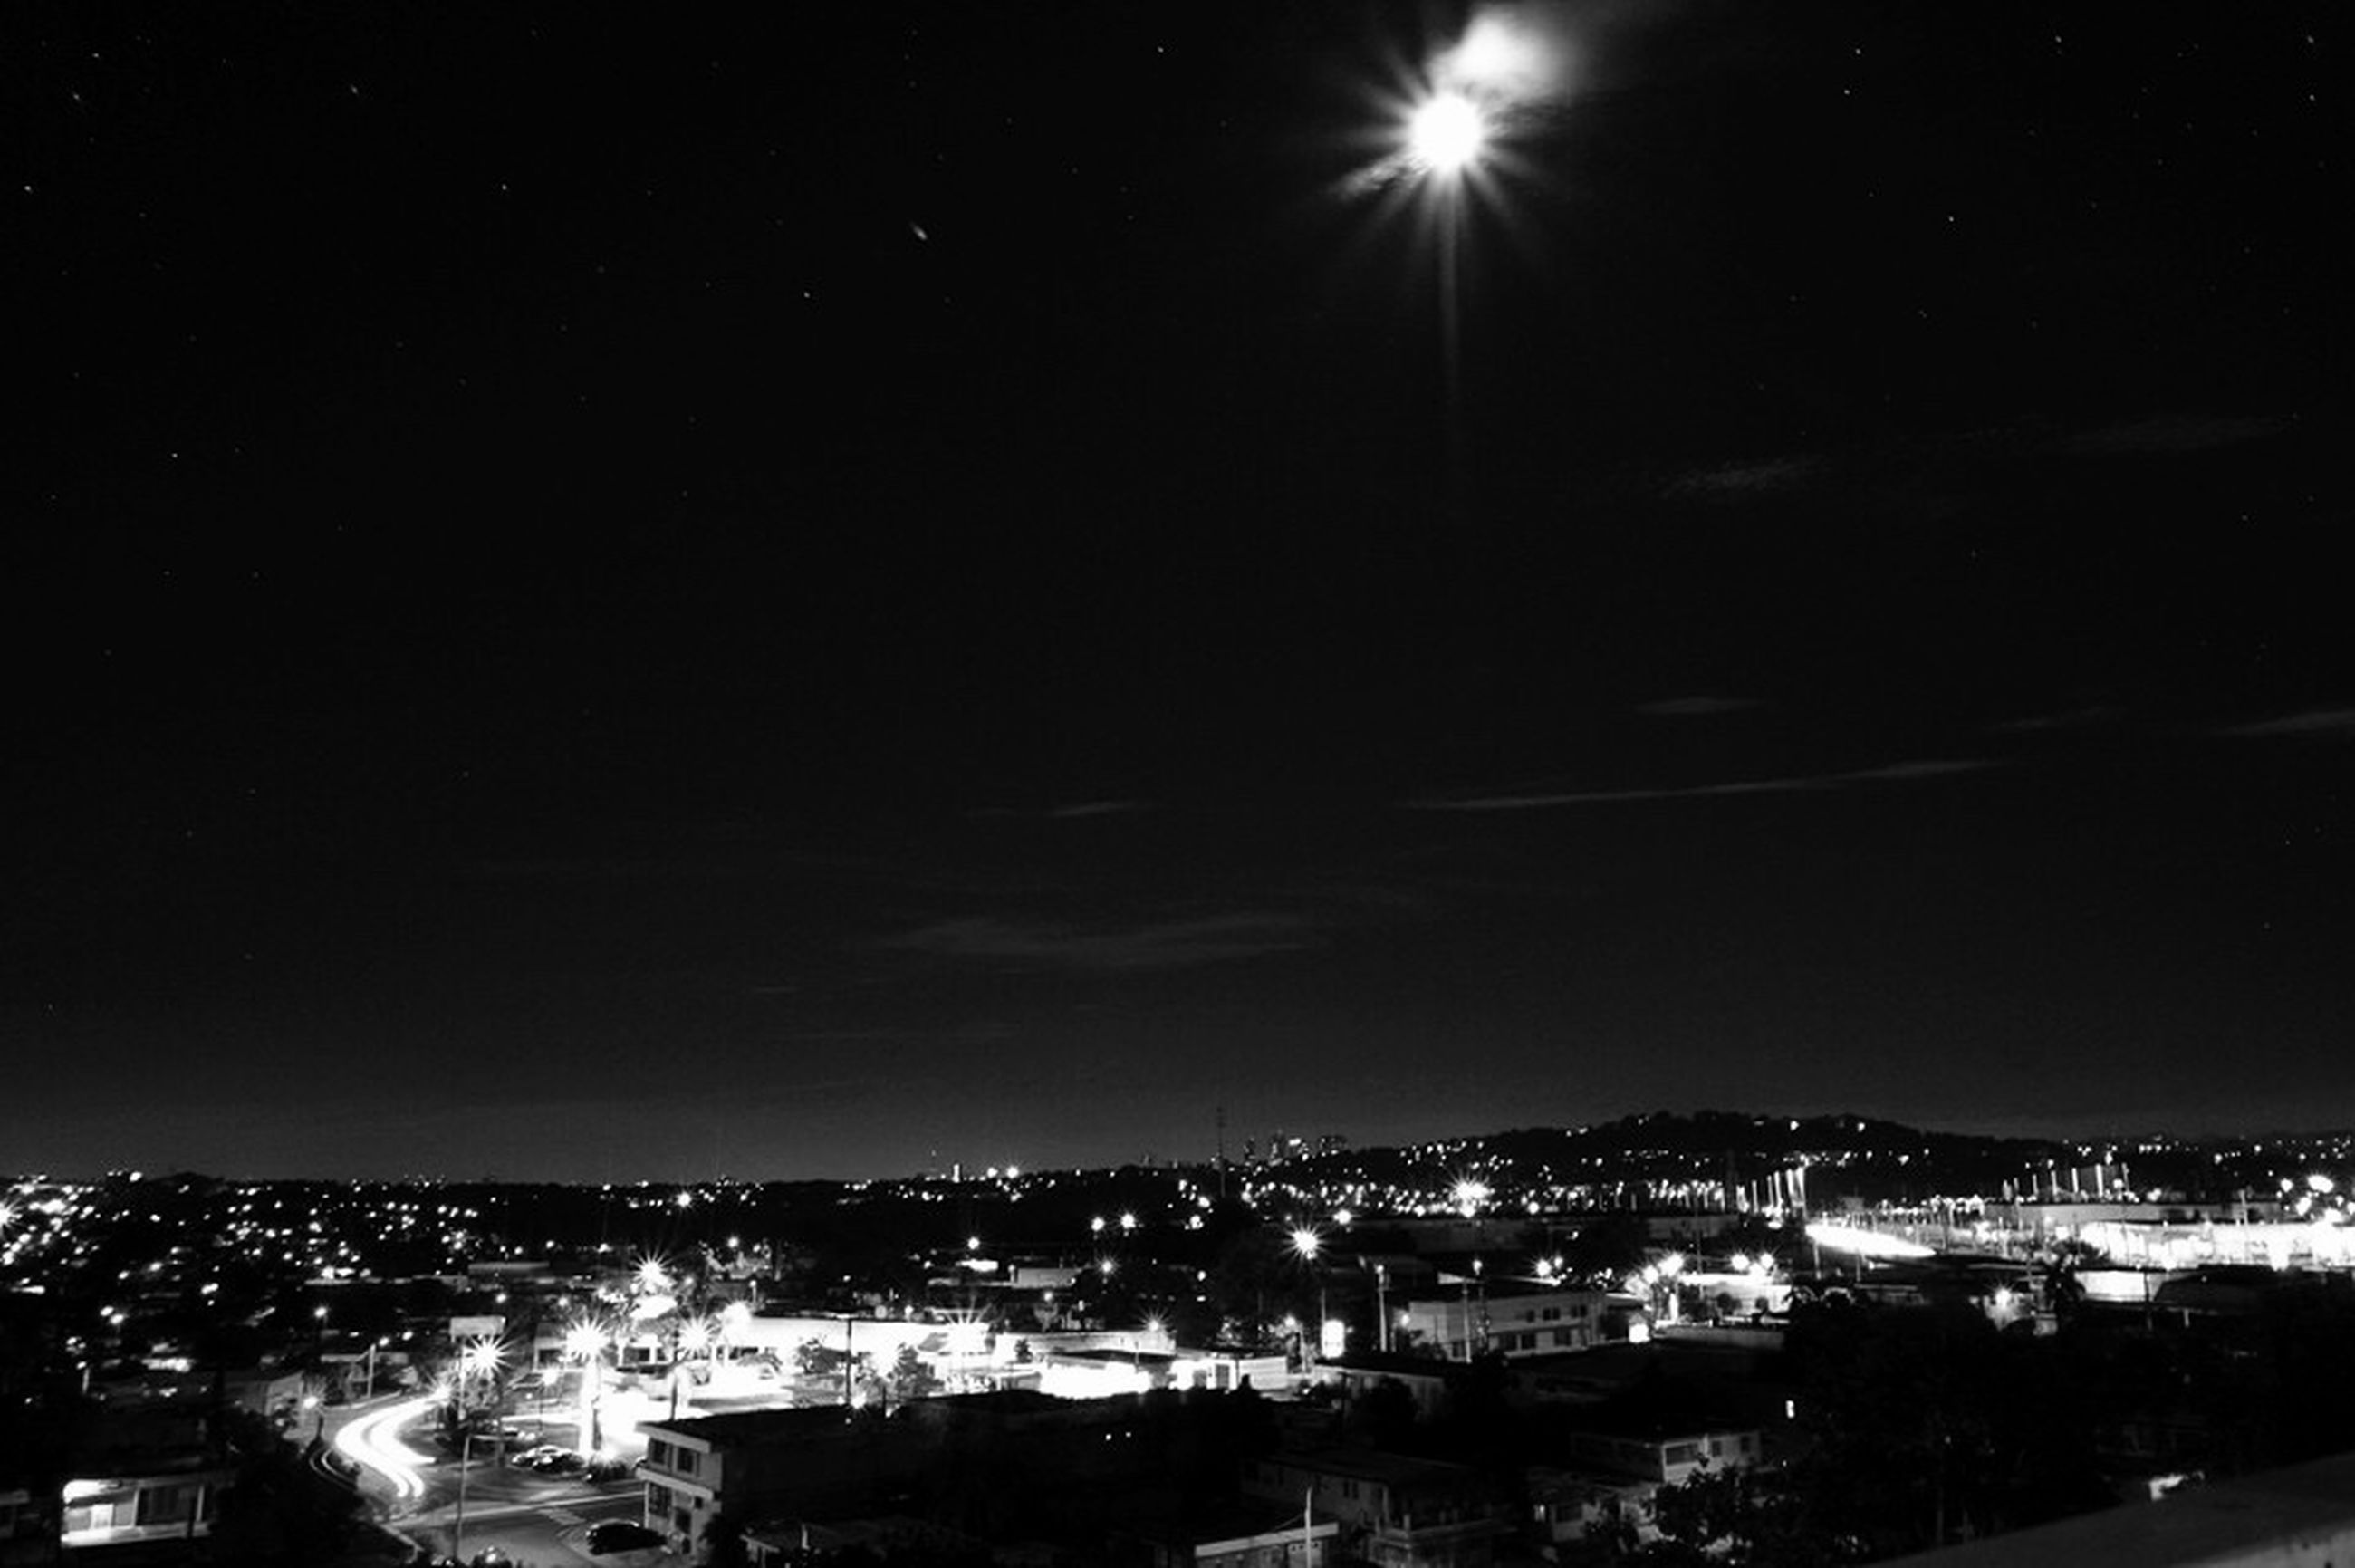 night, illuminated, cityscape, city, building exterior, built structure, architecture, moon, sky, crowded, high angle view, residential district, dark, aerial view, residential building, residential structure, outdoors, scenics, landscape, no people